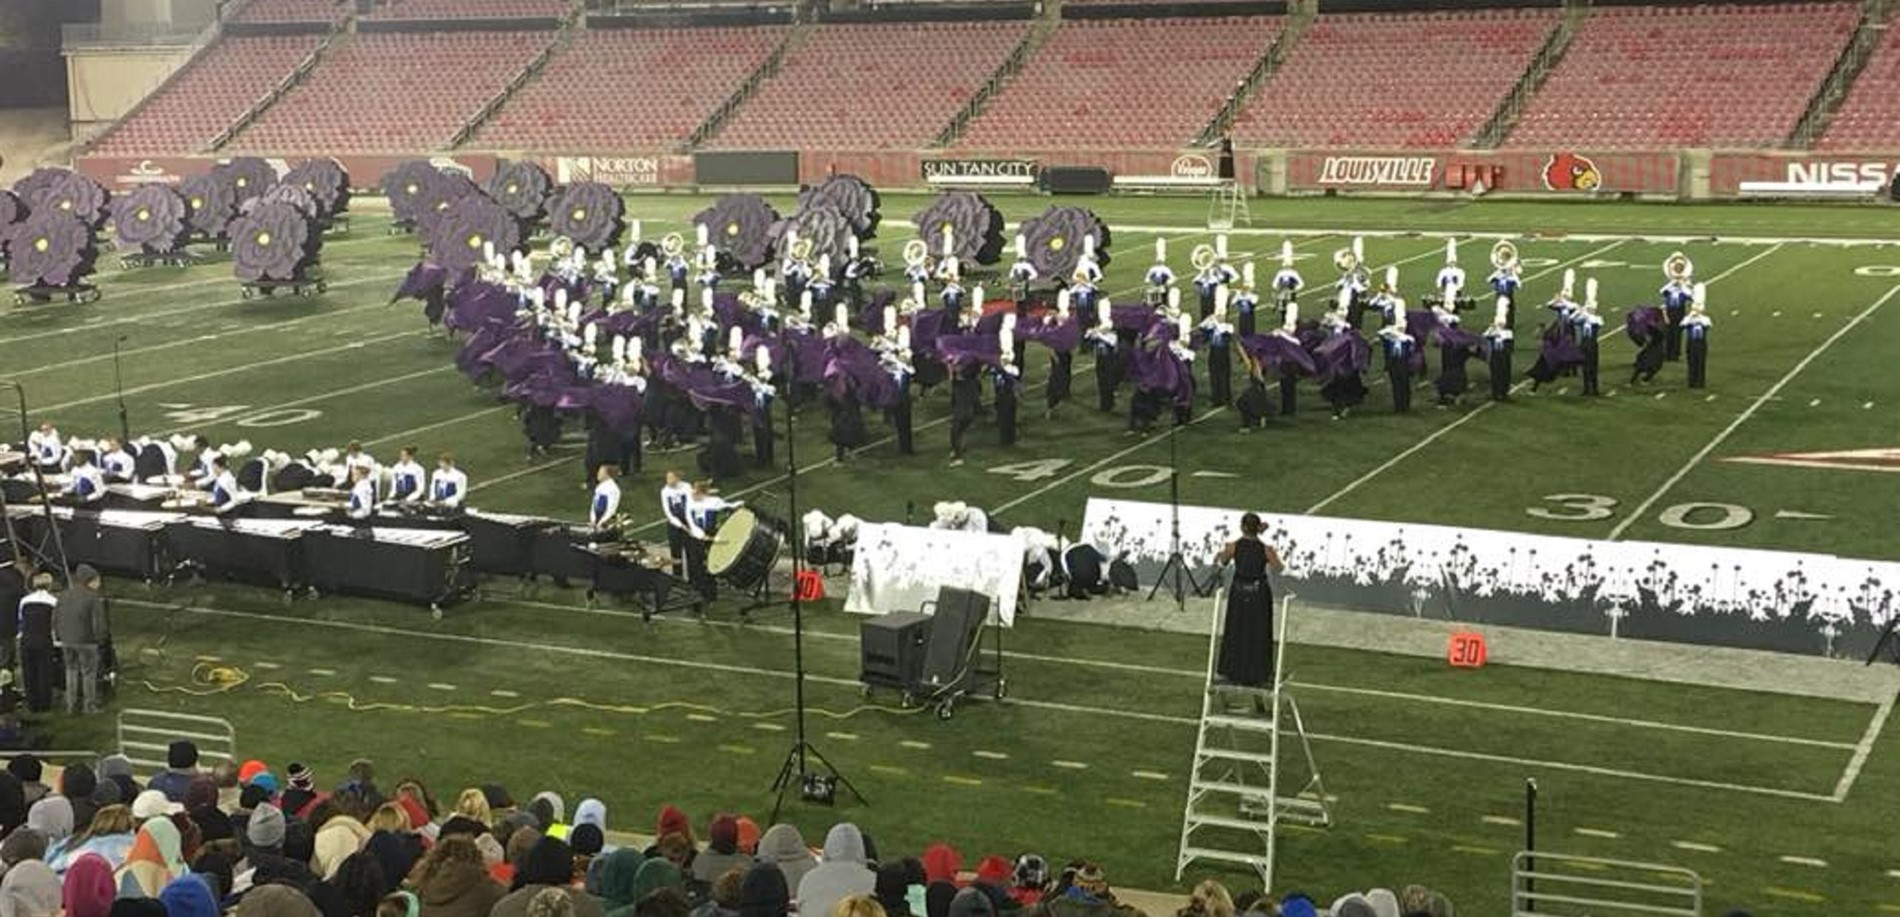 The North Hardin High School band was the state runner-up at the KMEA championships.